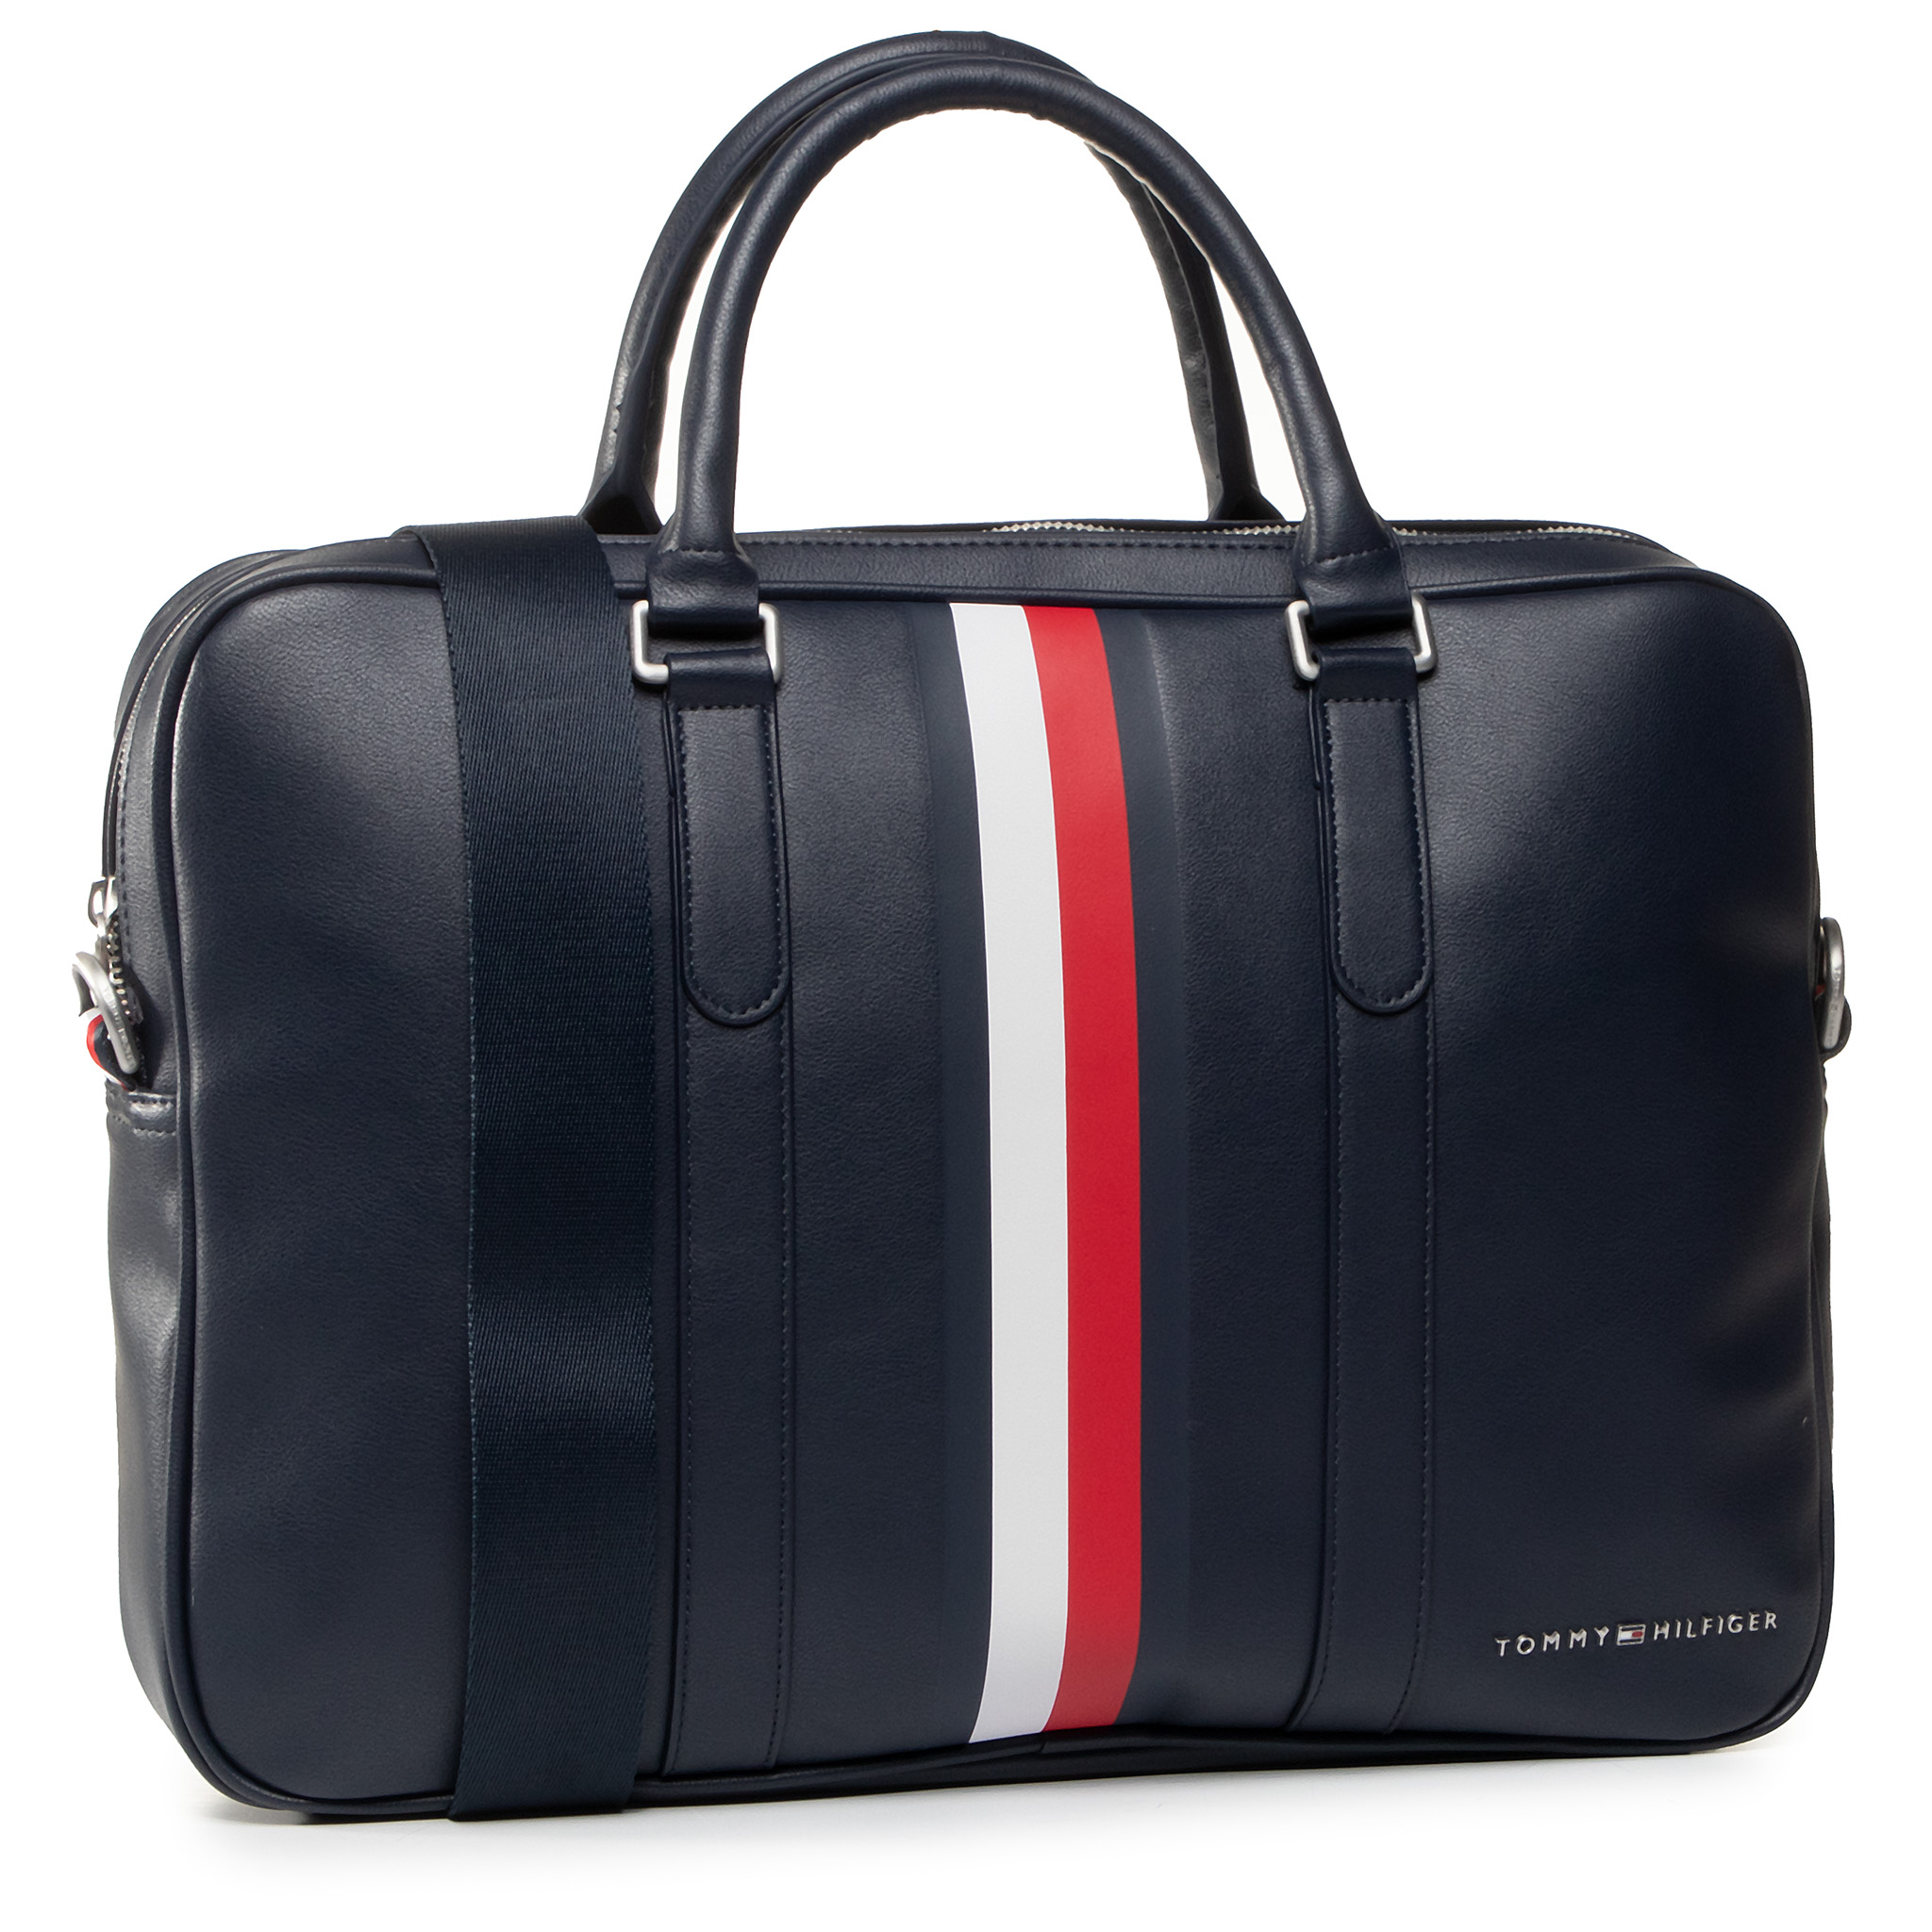 Geantă TOMMY HILFIGER - Th Metro Slim Computer Bag Corp CJM